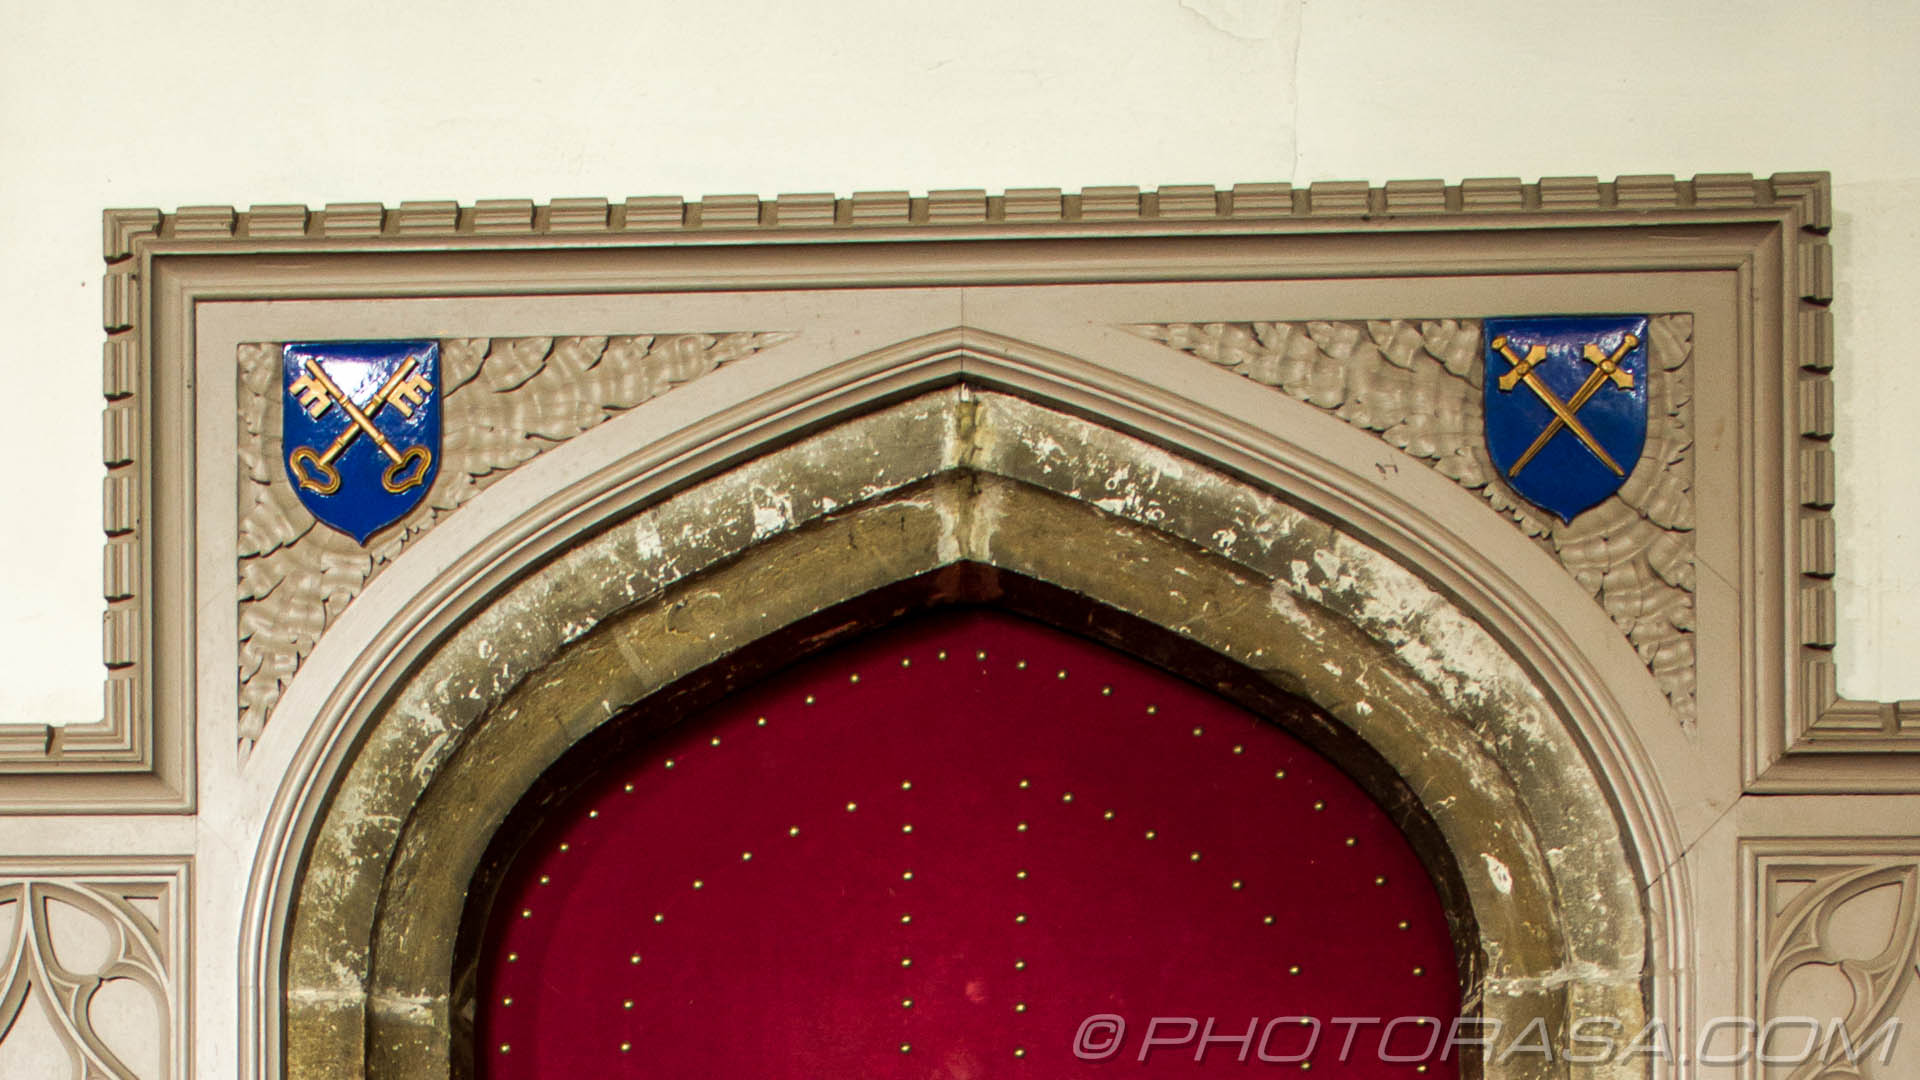 http://photorasa.com/parish-church-st-peter-st-paul-headcorn/spandrel-above-the-door-to-the-vicars-vestry-showing-crossed-keys-and-crossed-swords-symbols/